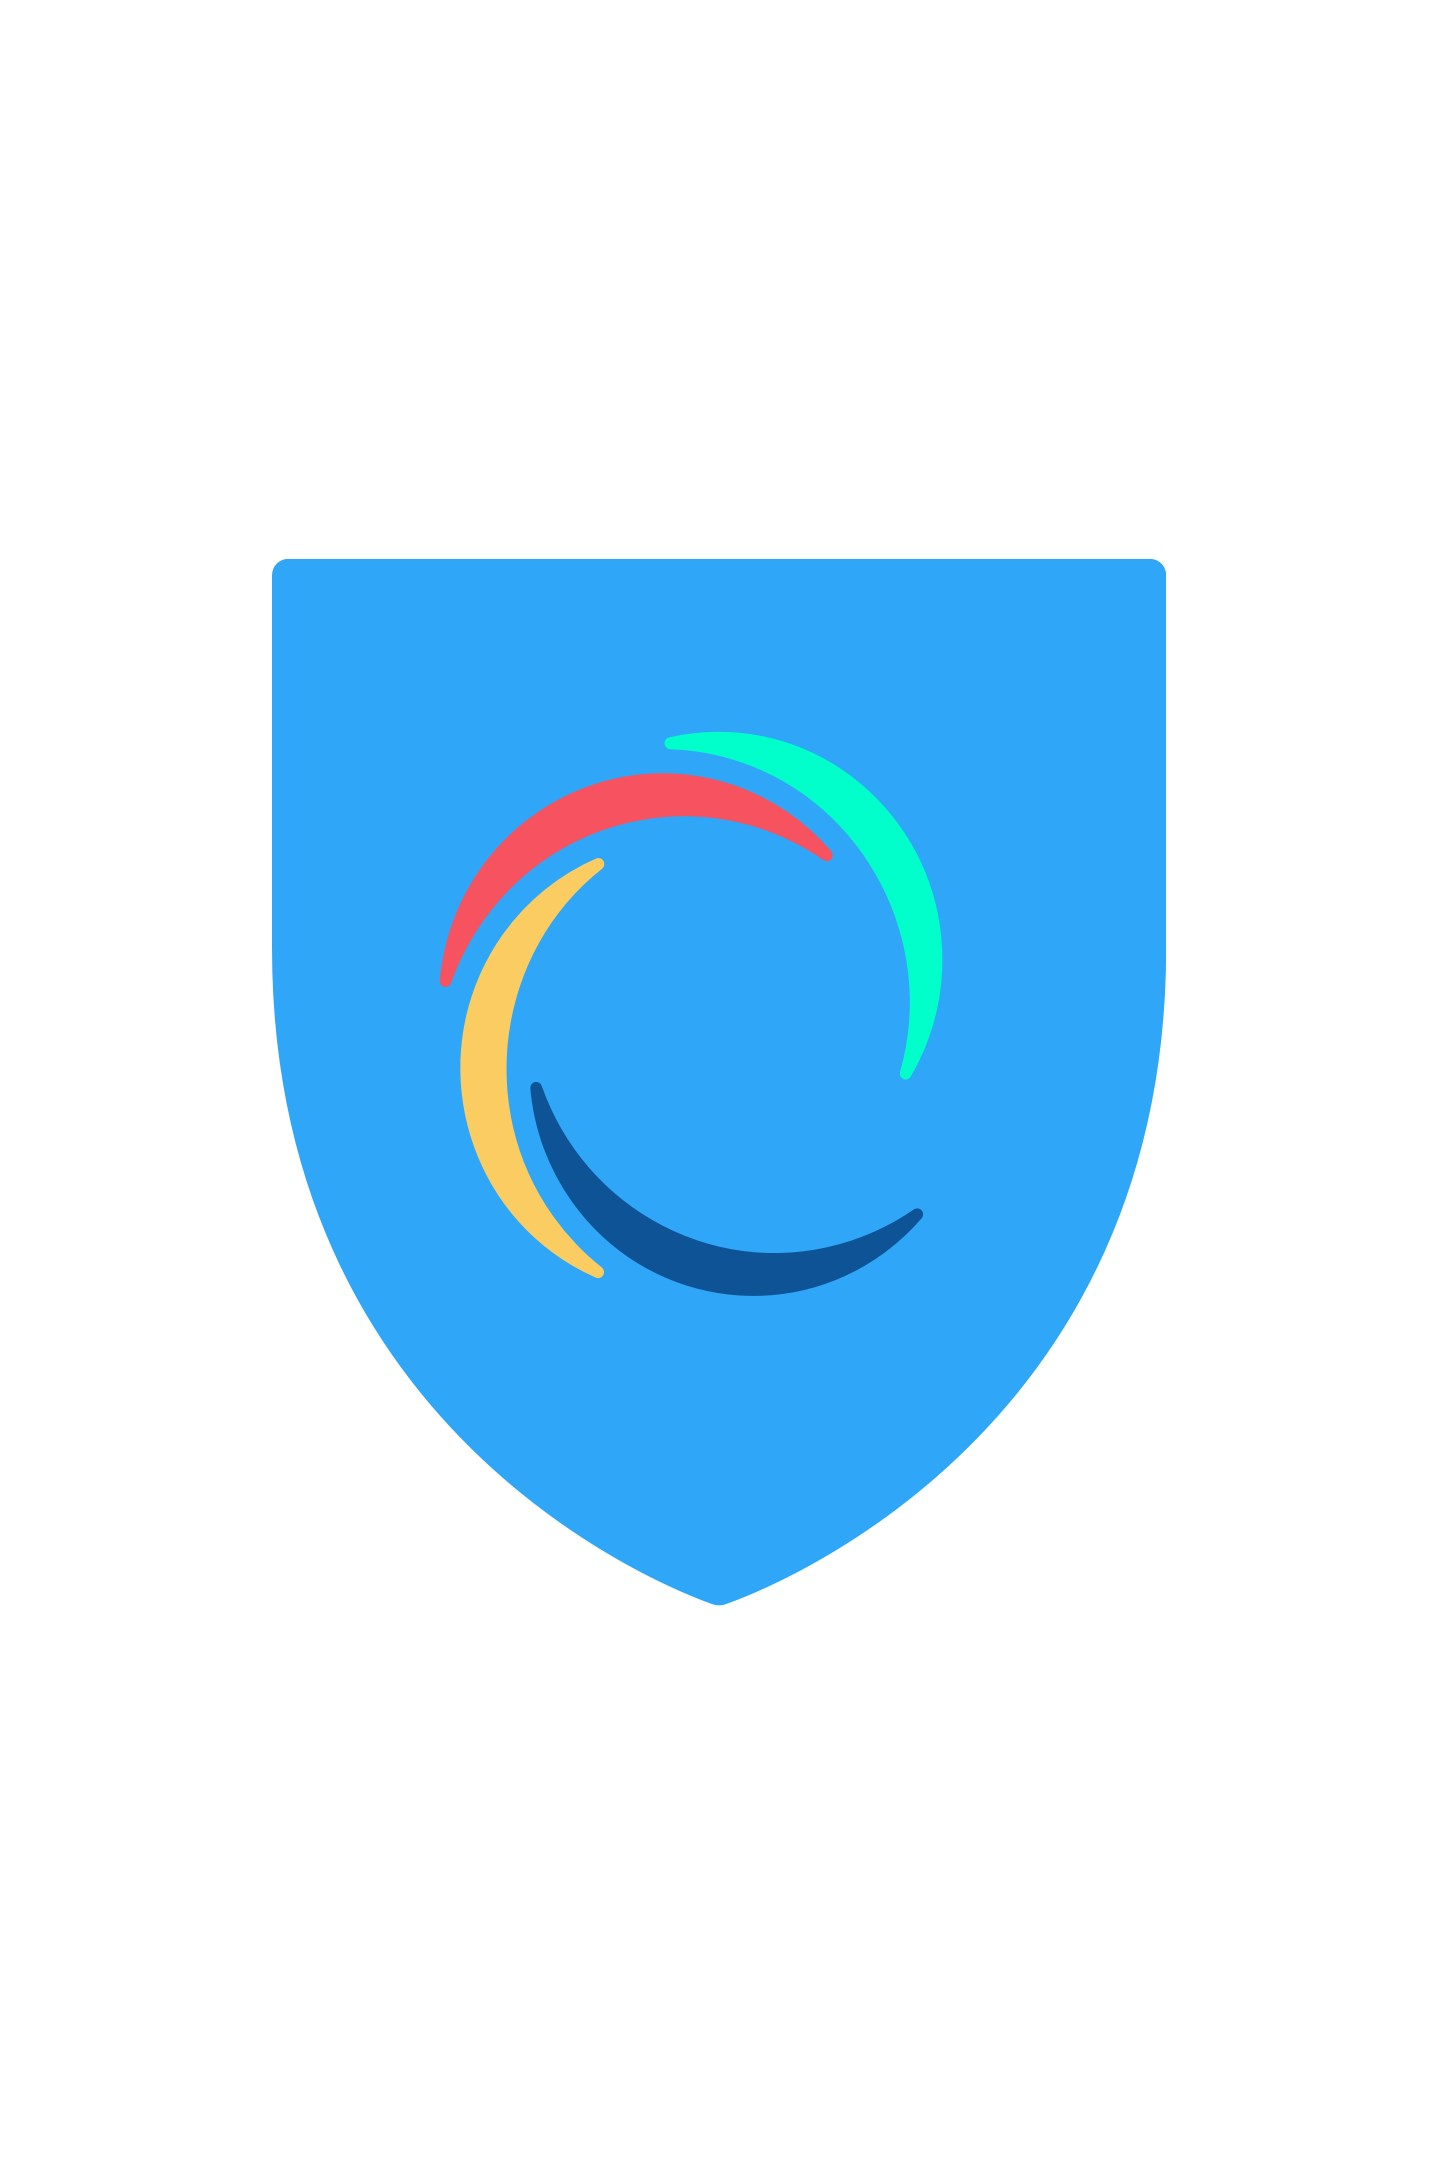 hotspot shield free download full version for pc